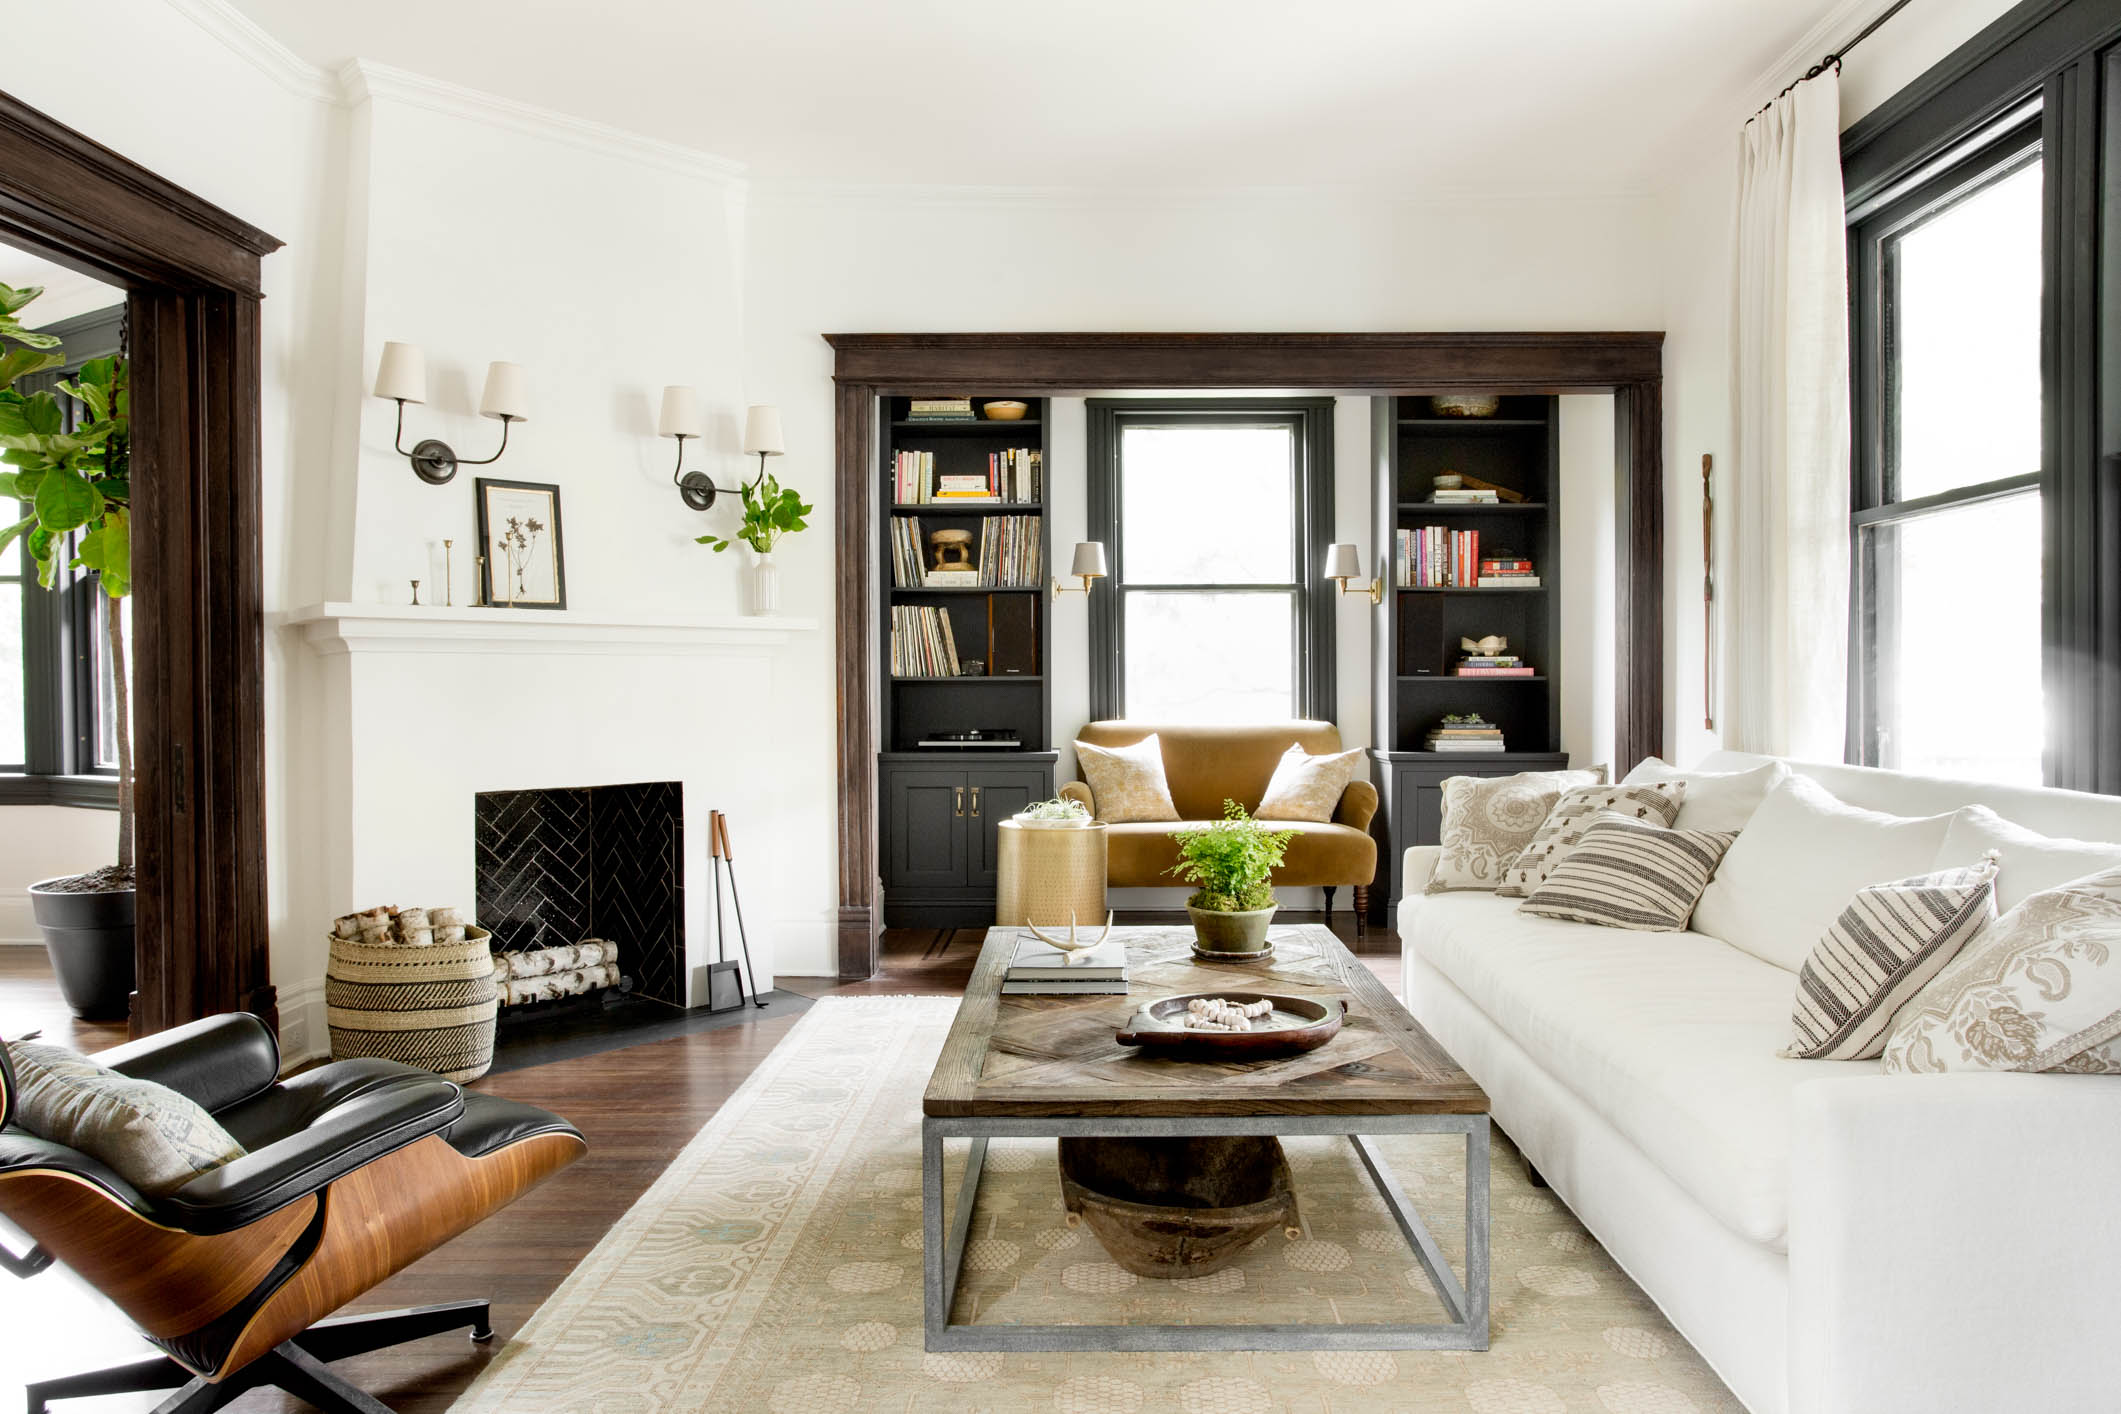 westchester_NY-living-room-interior-photography.jpg